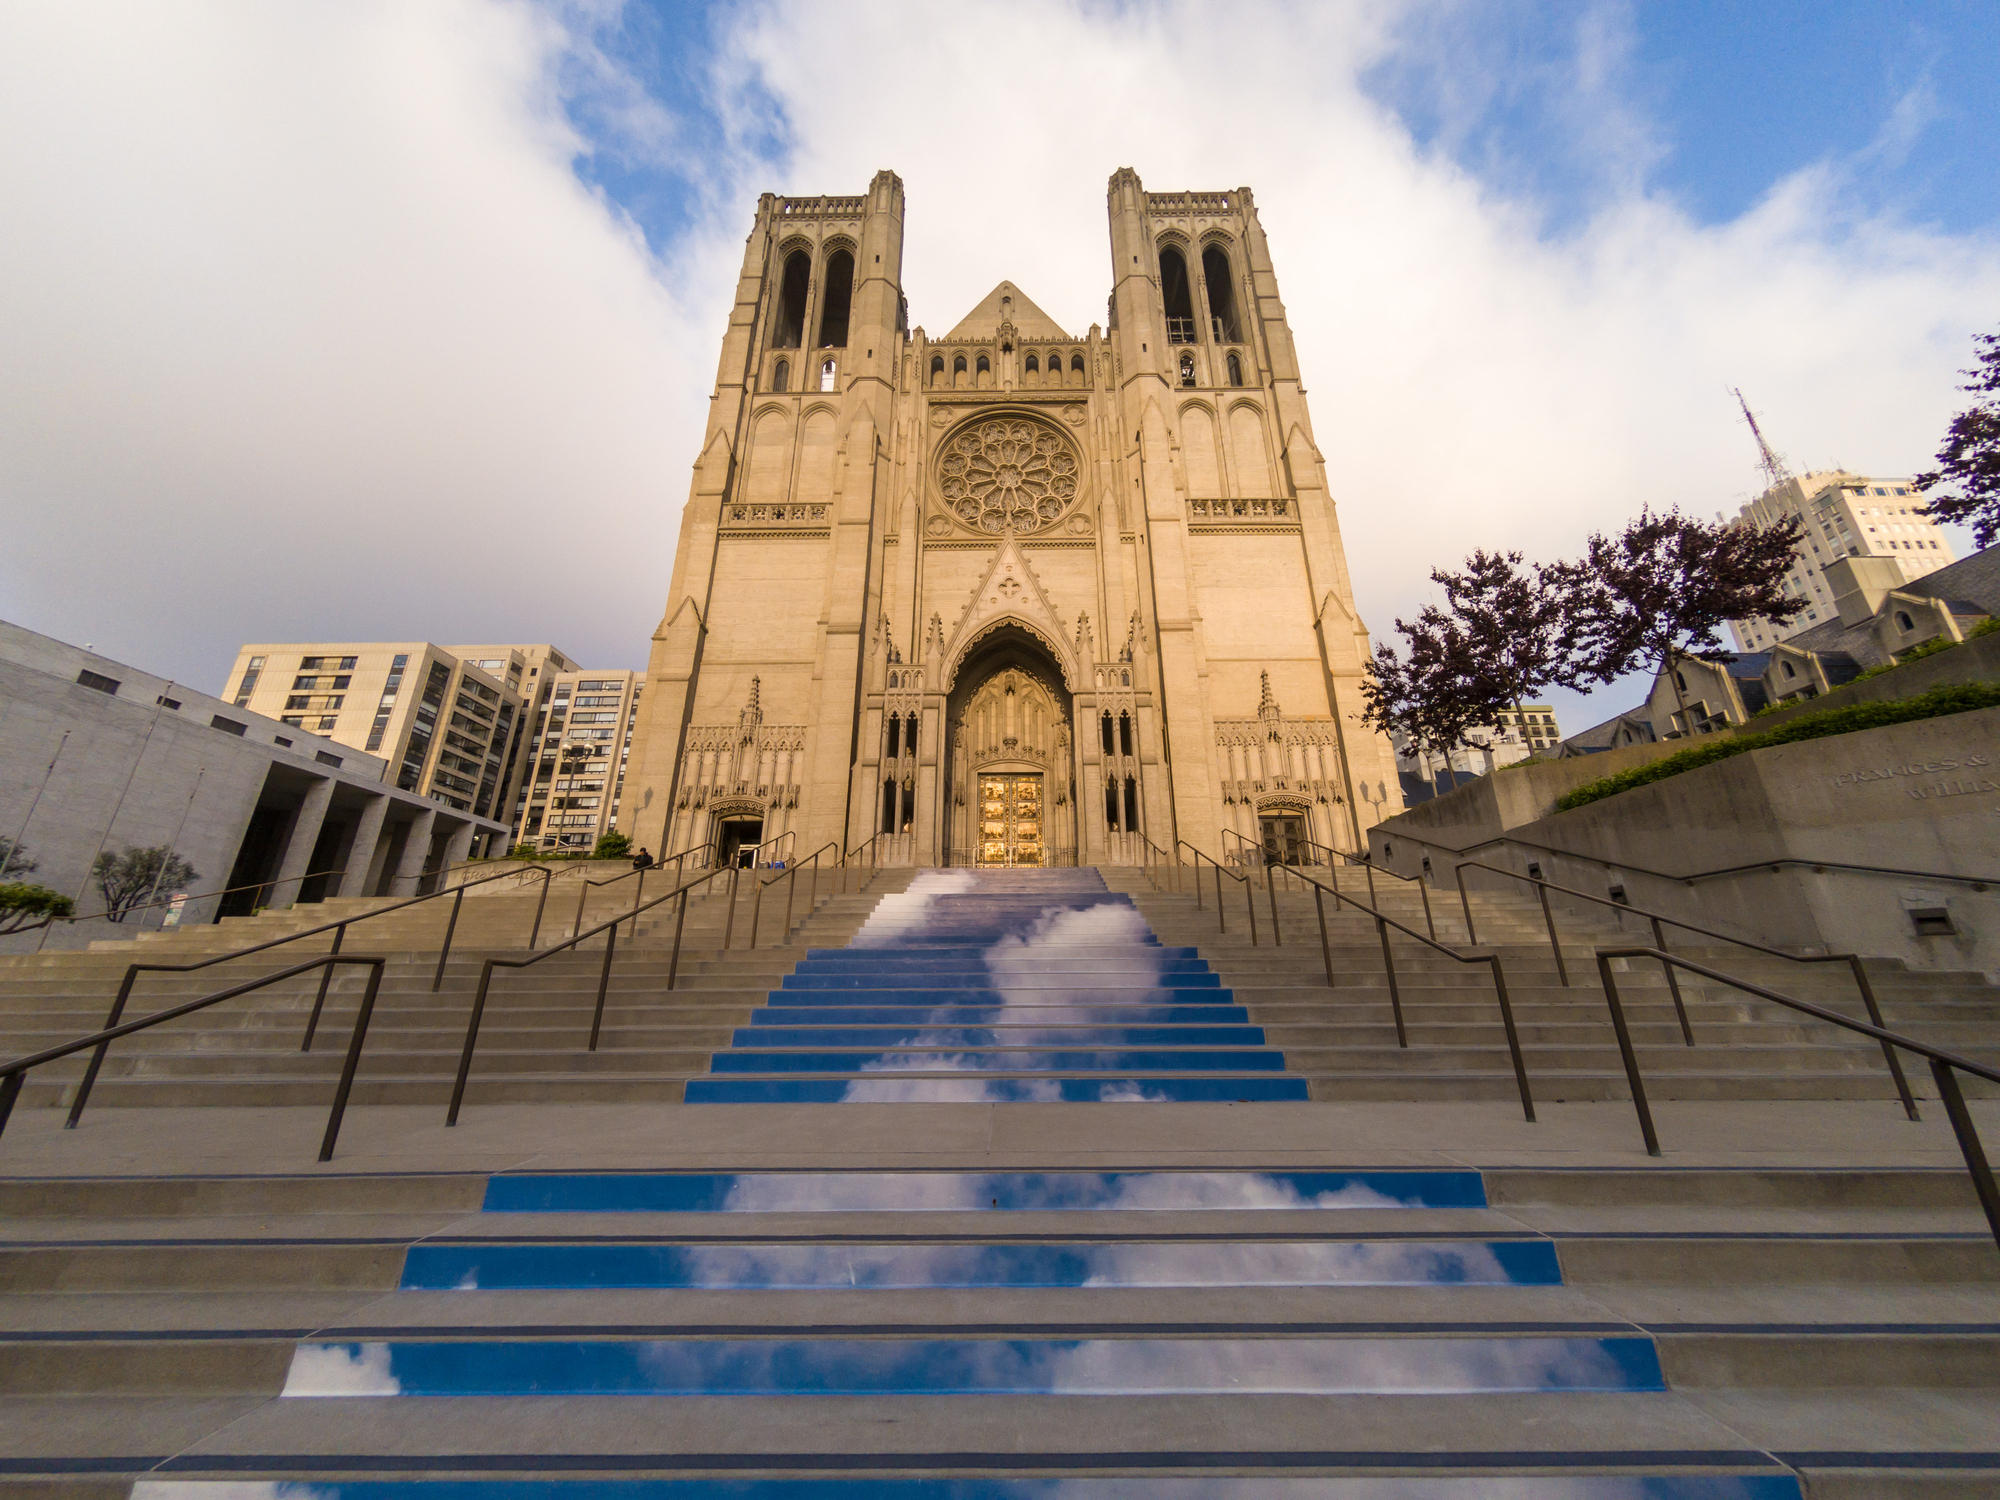 Steps up to a famous cathedral in San Francisco.